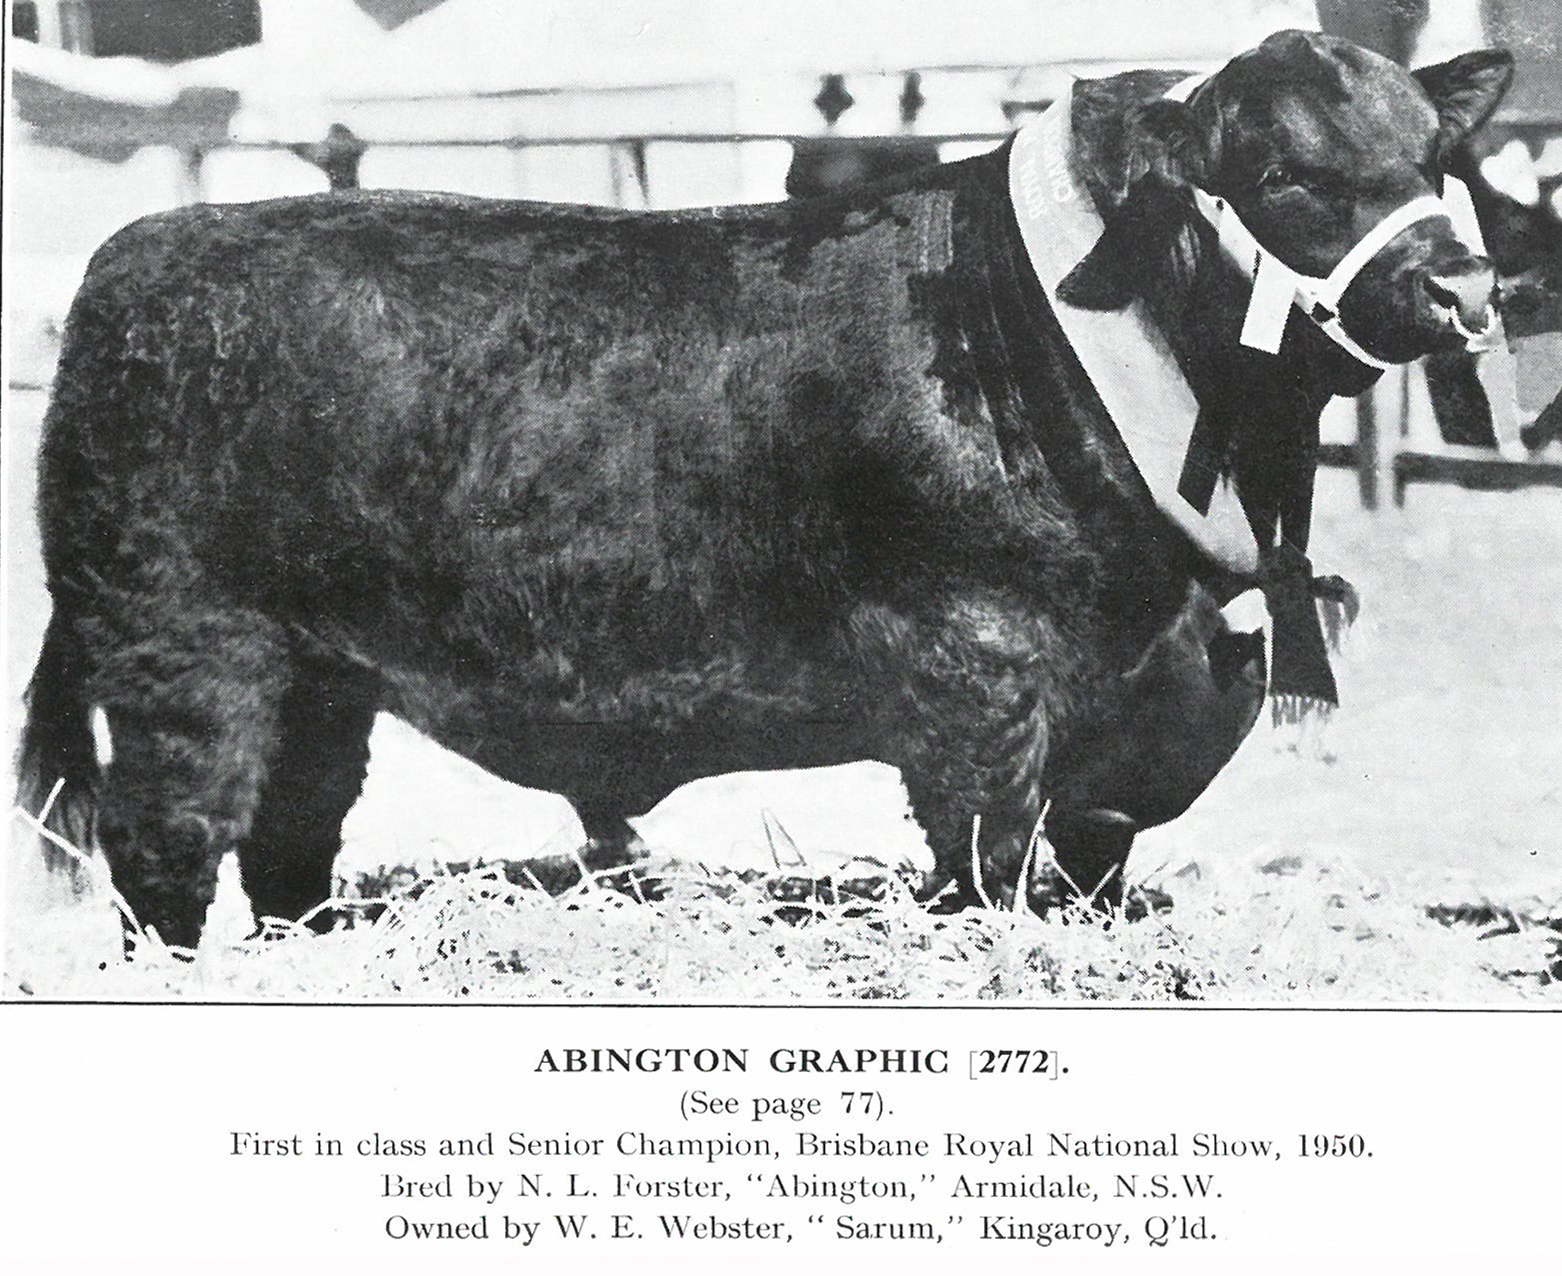 Abington Graphic